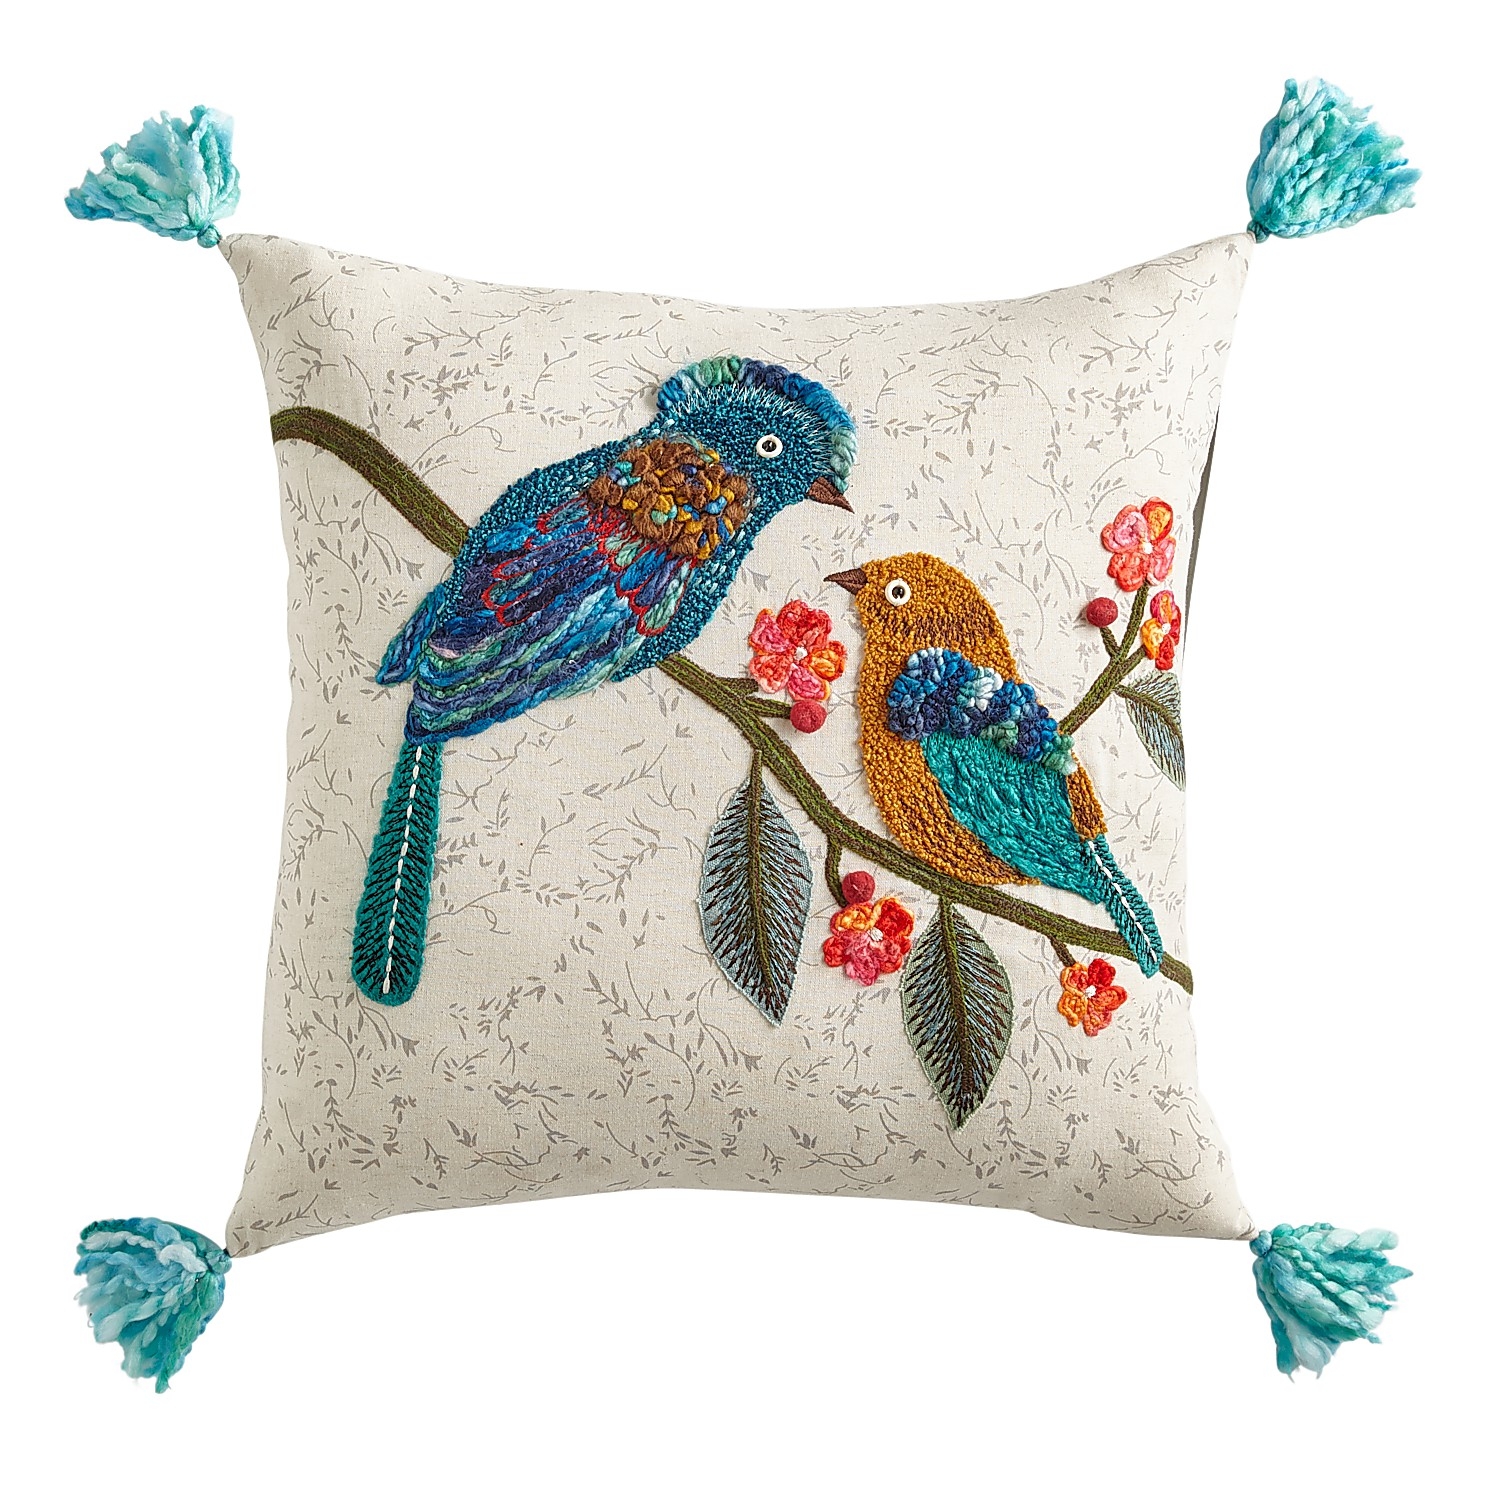 Two Birds on Branches Pillow with Tassels